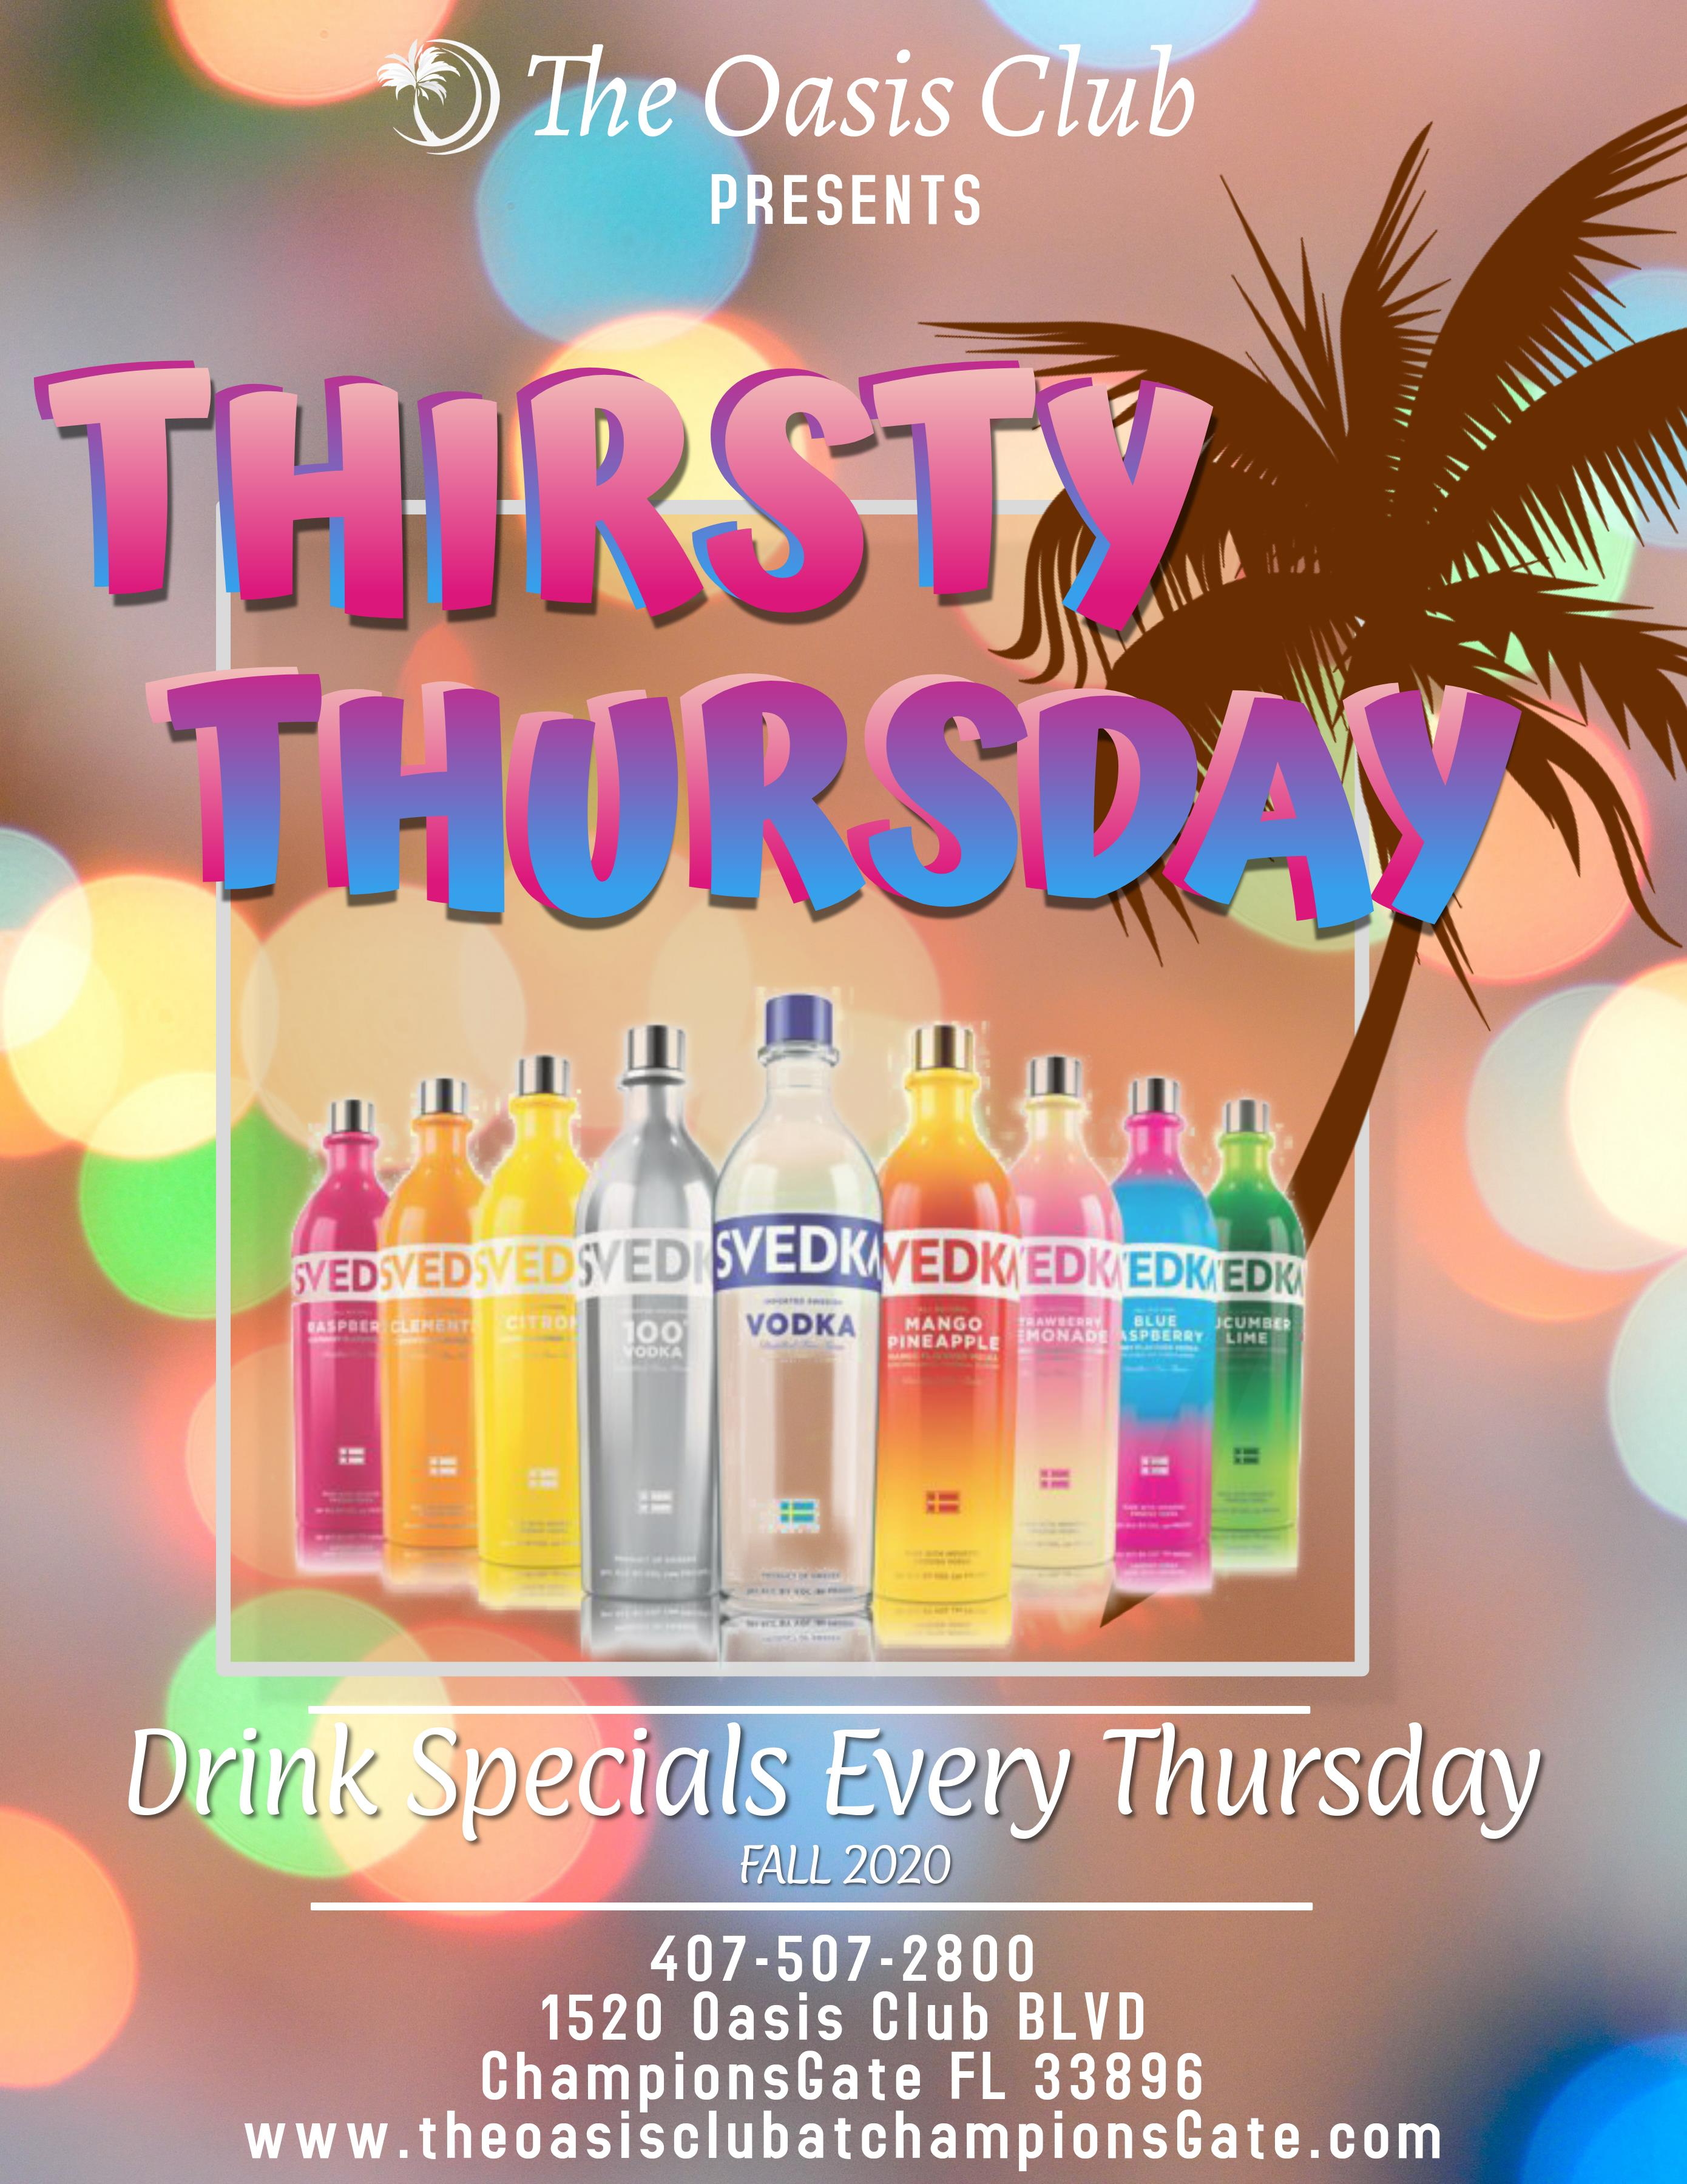 The Oasis Club, Thirsty Thursdays. In the Grille Room. Lennar Orlando Beer. $10 Specialty Cocktail. $25 Beer Buckets (4 domestic beers, 3 house shots). Every Thursday in January. 1520 Oasis Club Blvd, ChampionsGate, Fl. 33896. 407-507-2800